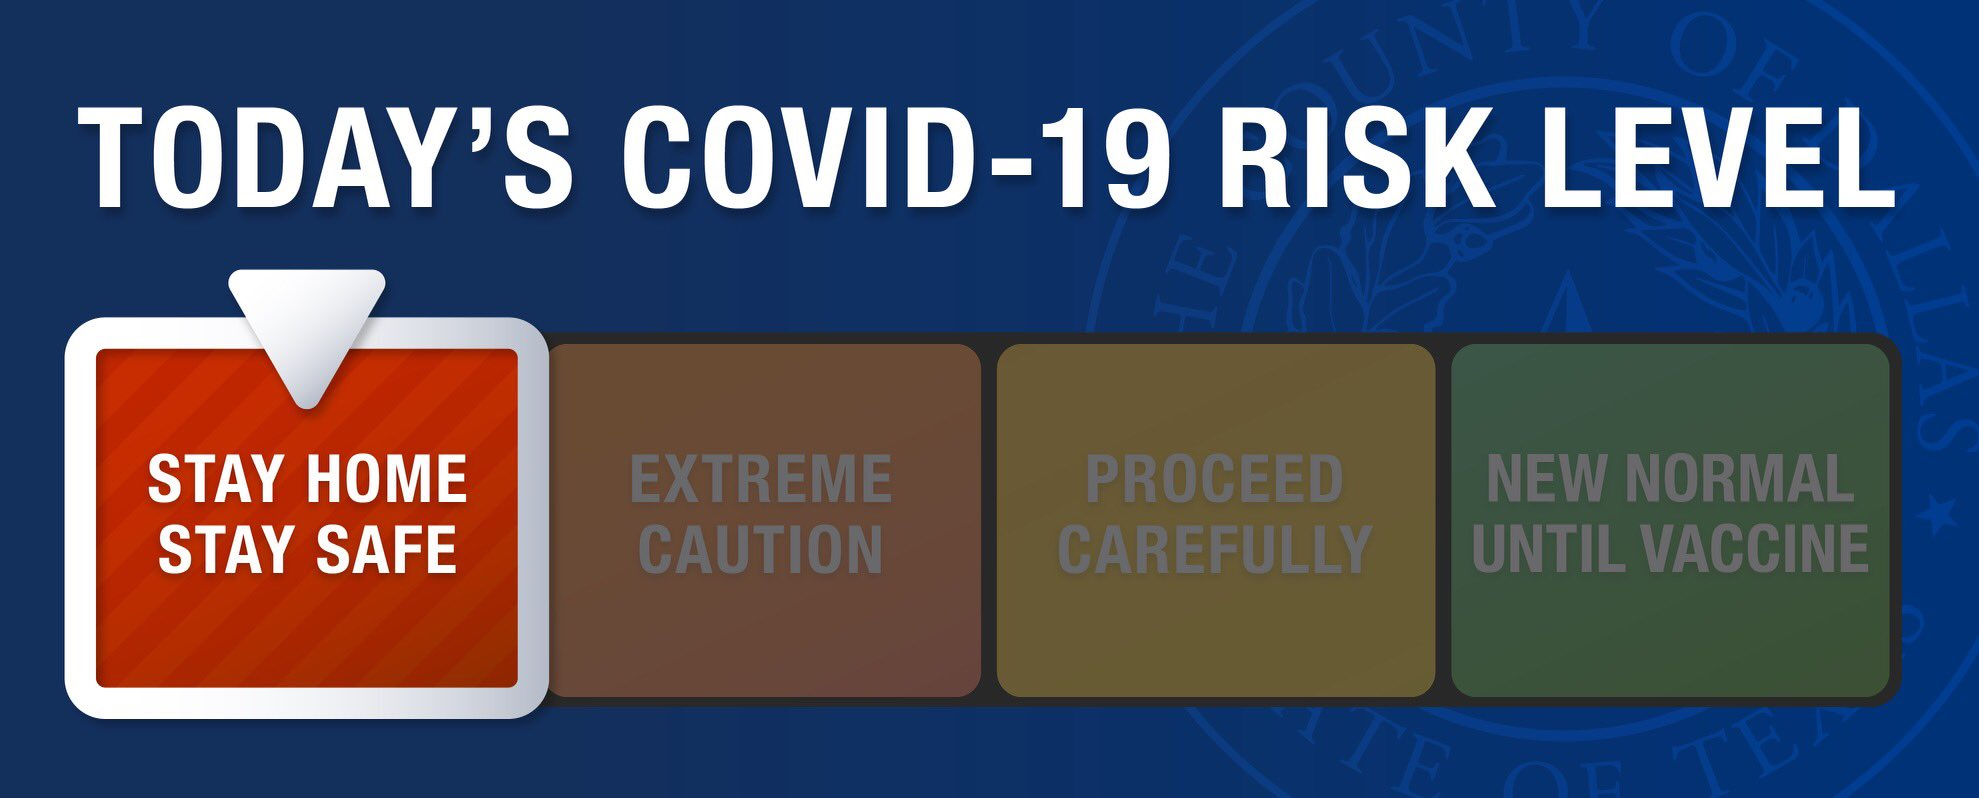 Today's COVID-19 Risk Level is Red. Stay Home. Stay Safe.